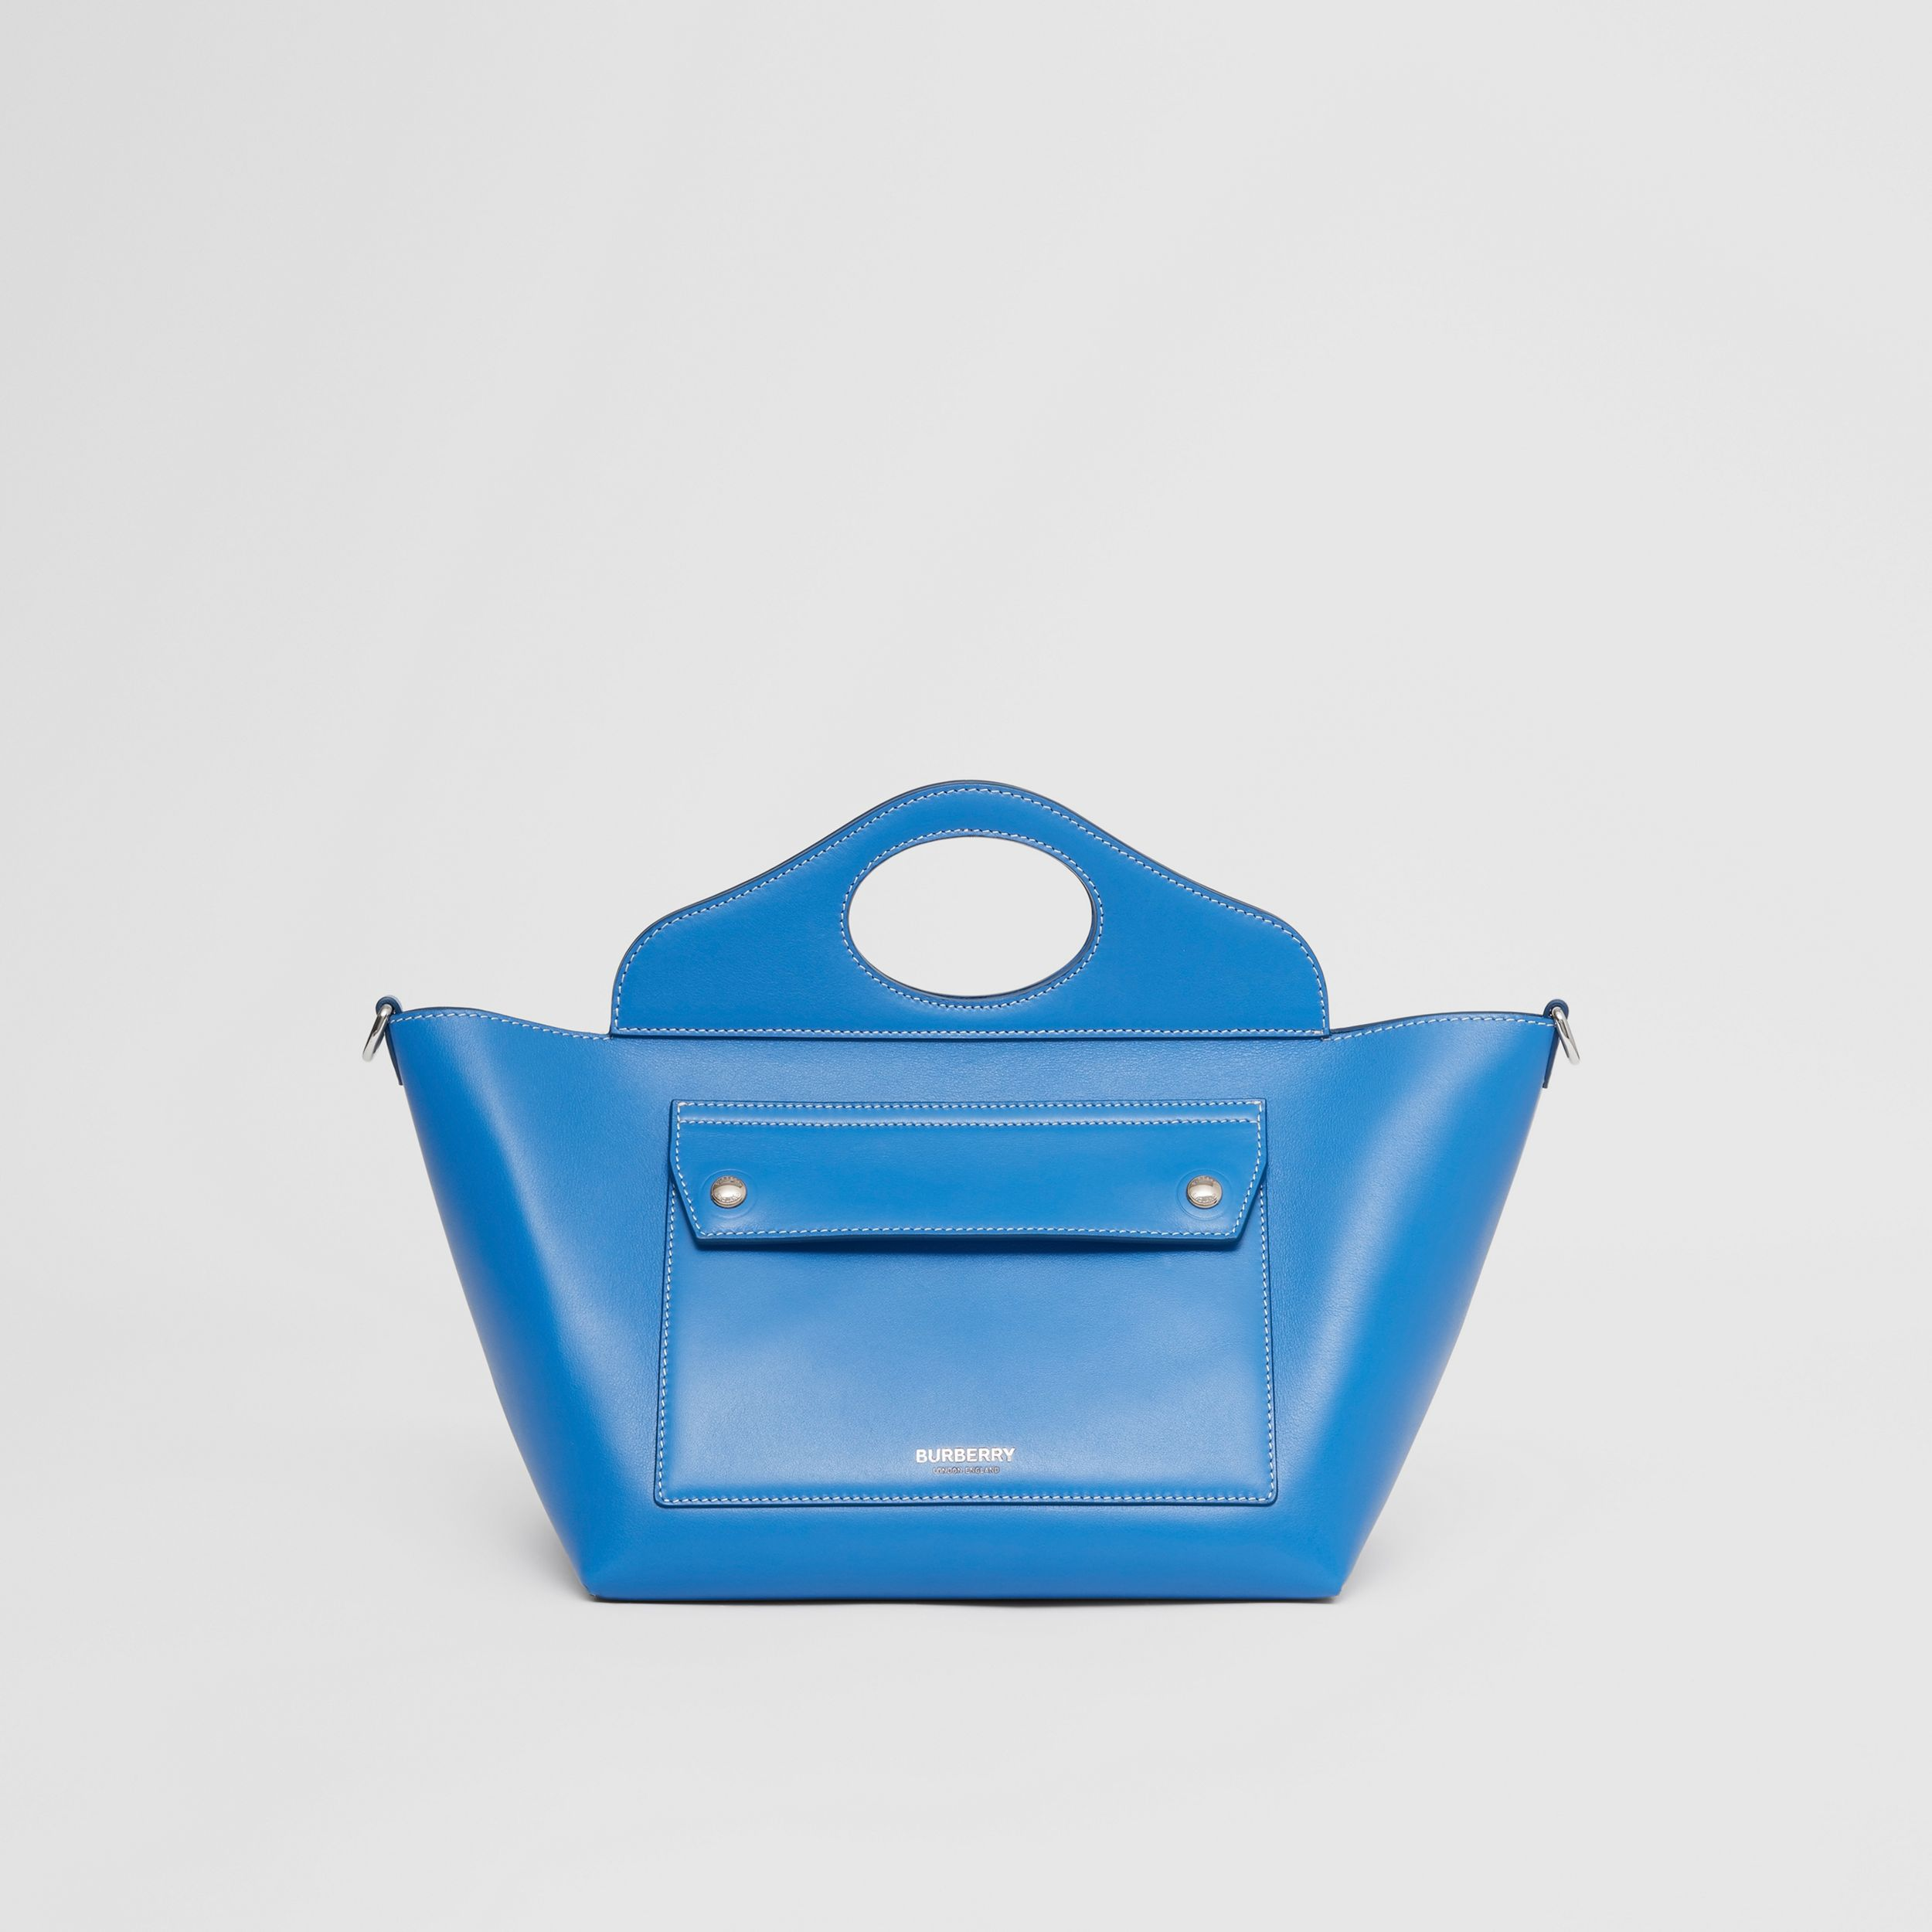 Mini Leather Soft Pocket Tote in Warm Royal Blue - Women | Burberry United States - 1